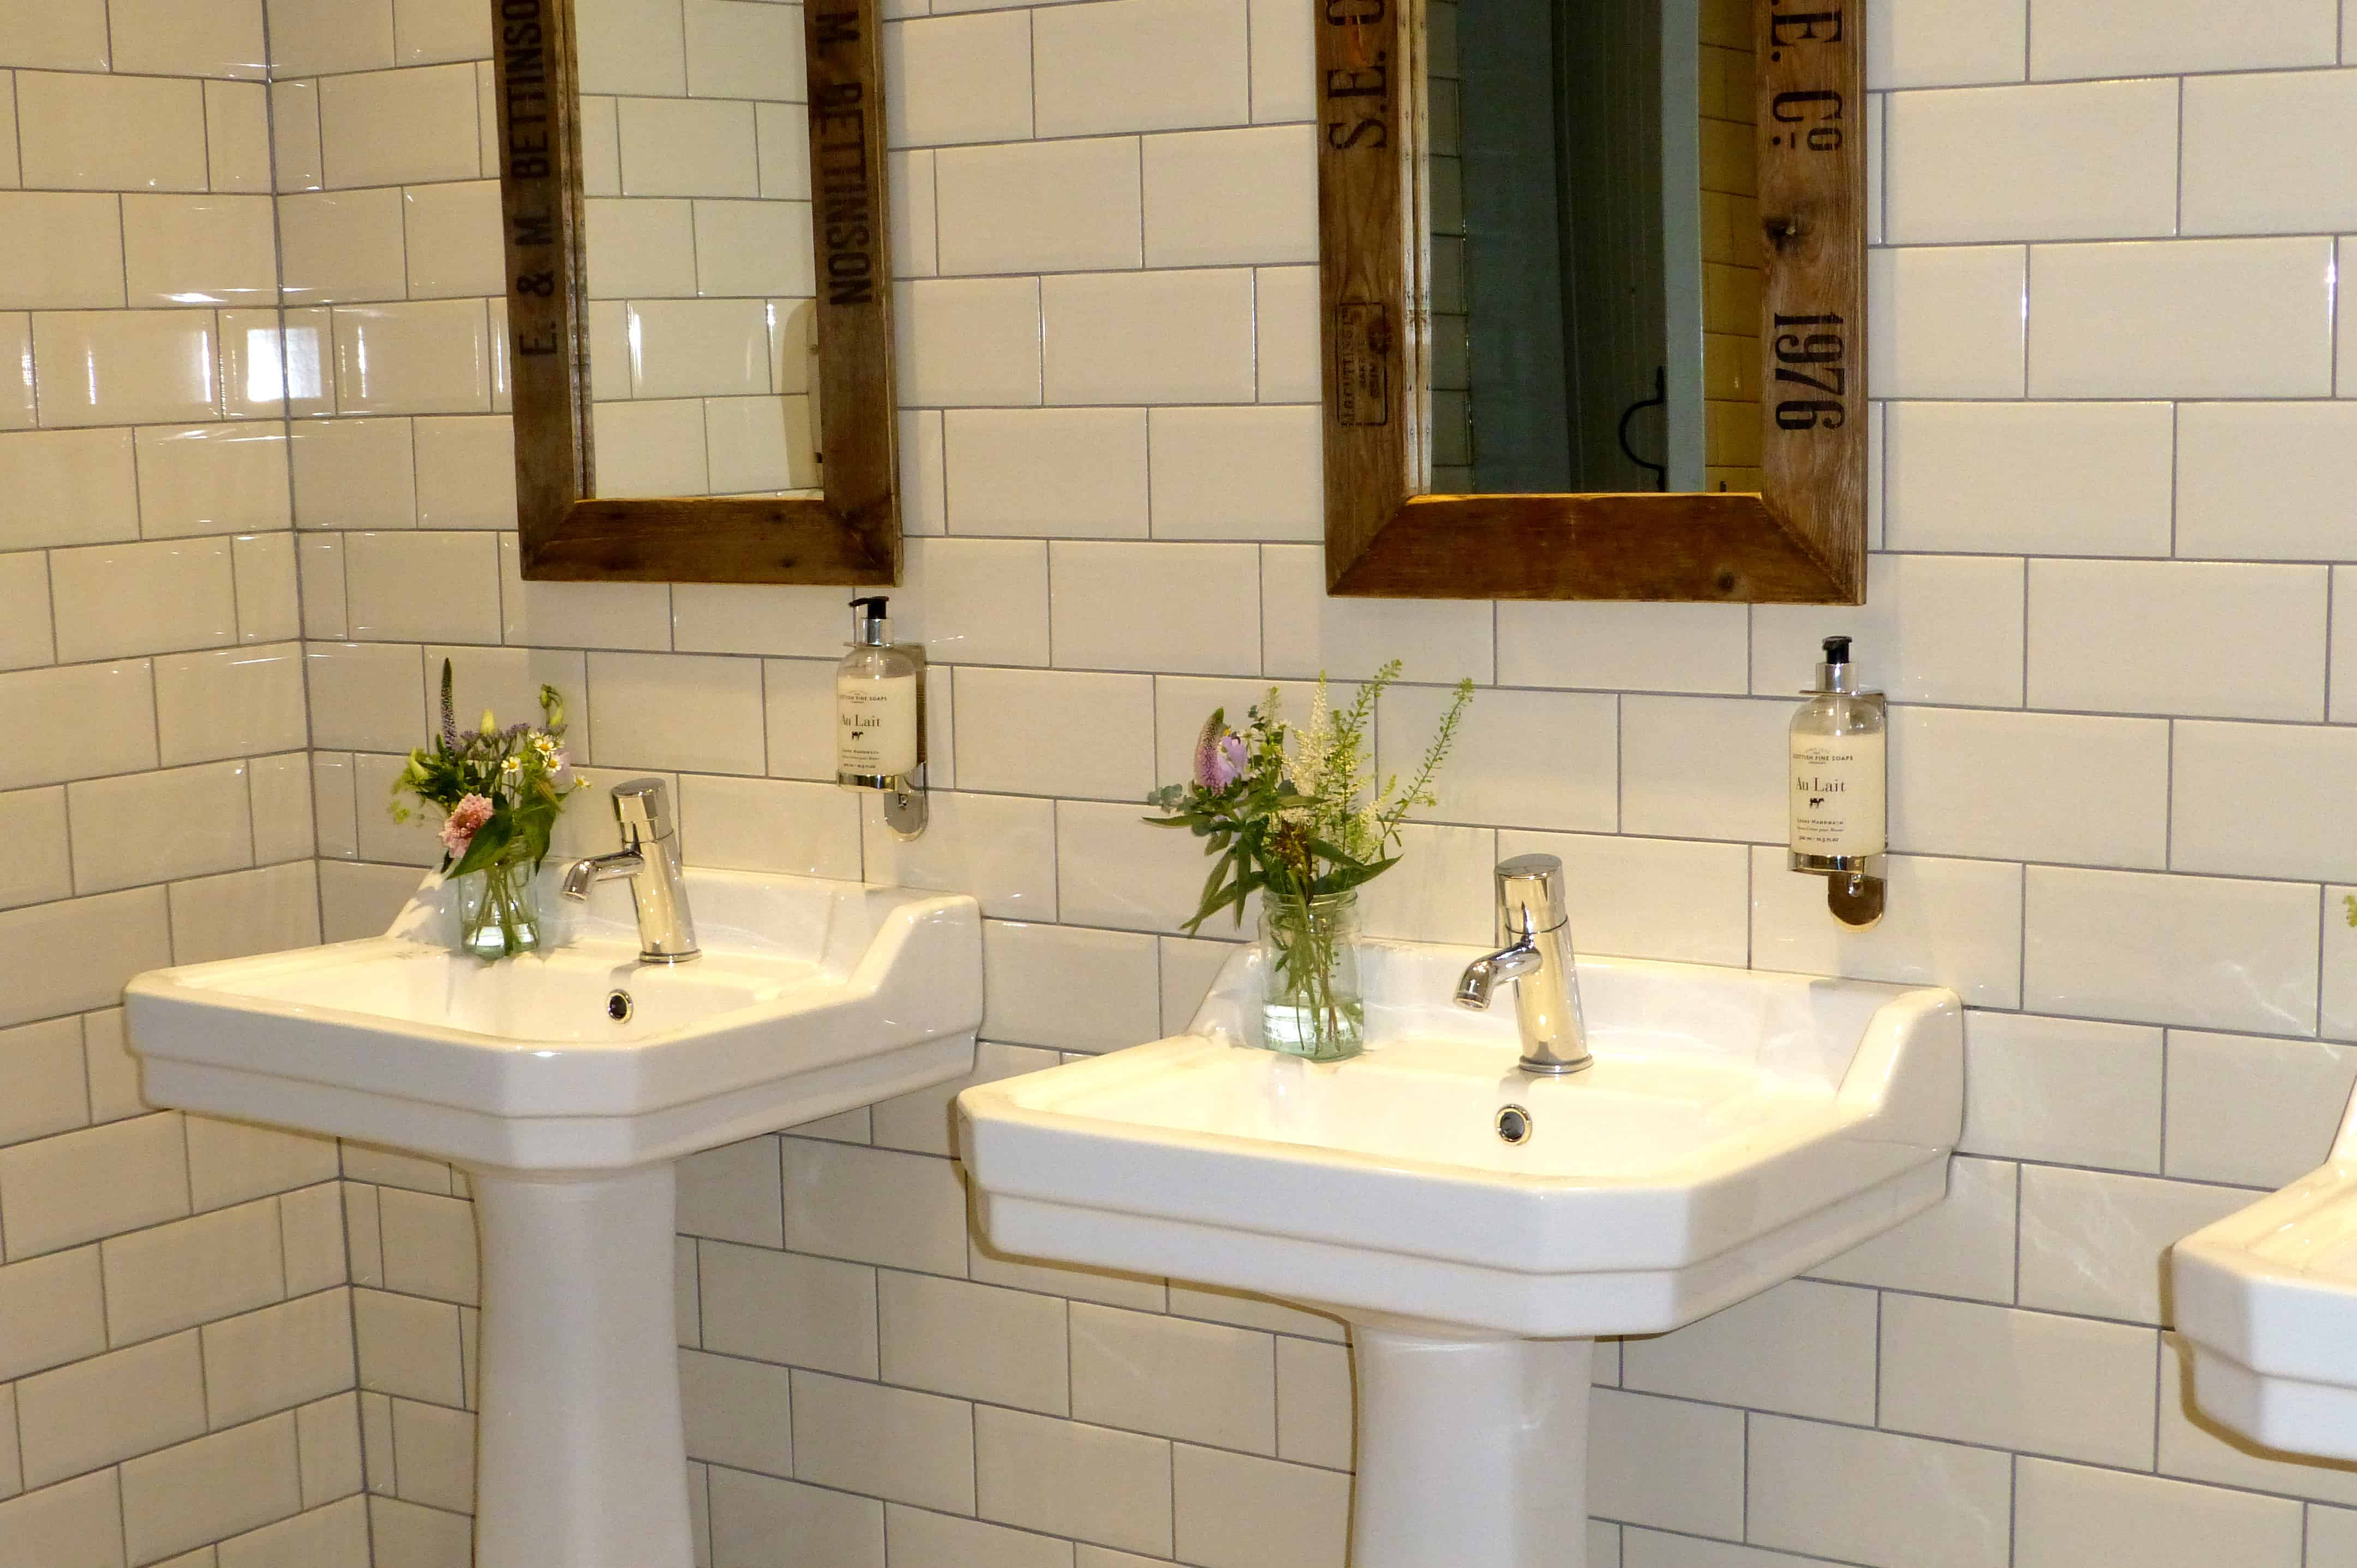 Floral arrangements in the toilets